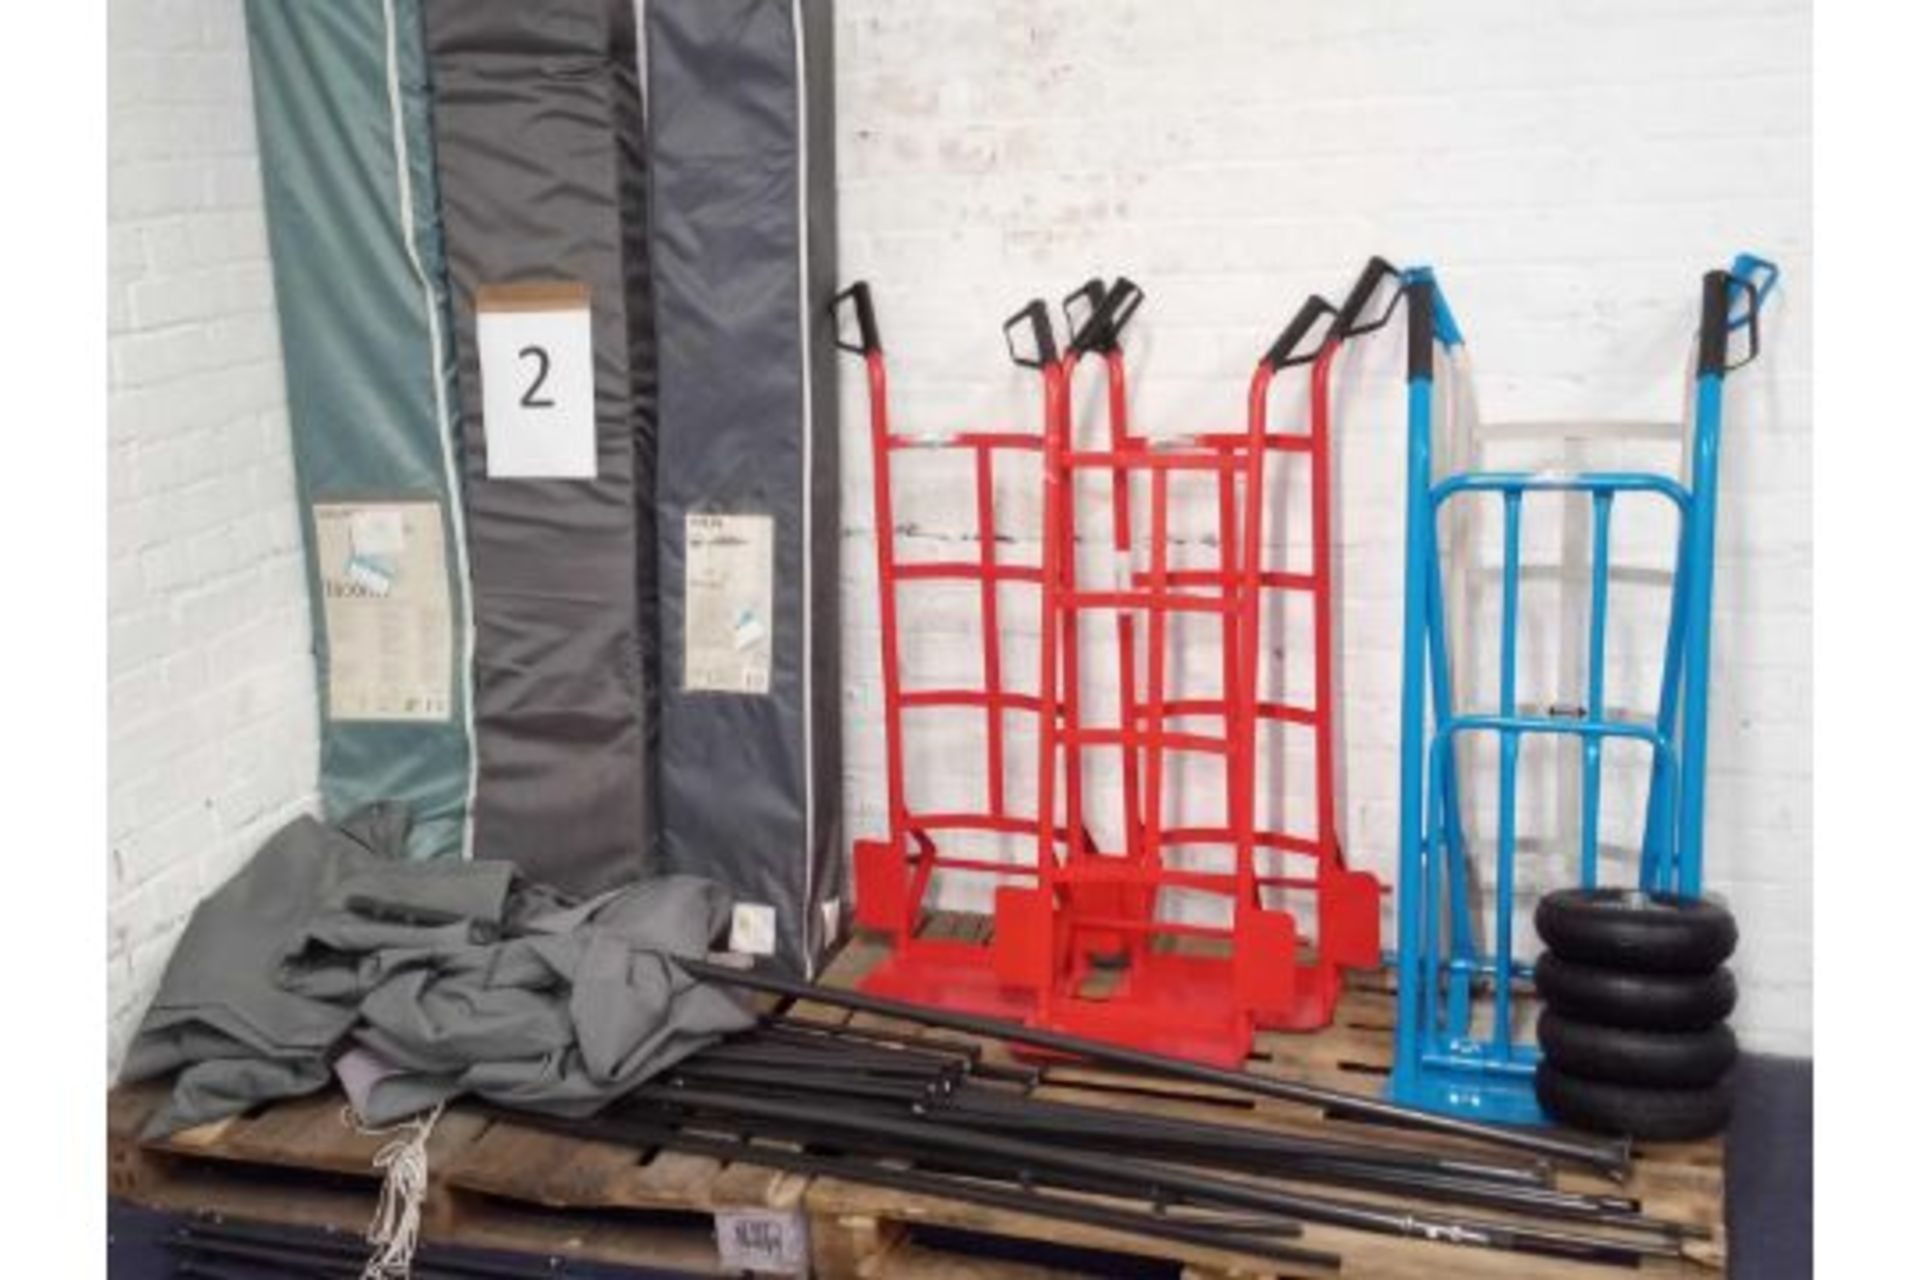 RRP £400 Pallet To Contain 8 Assorted Items For Home Utilisation Or Market Sellers